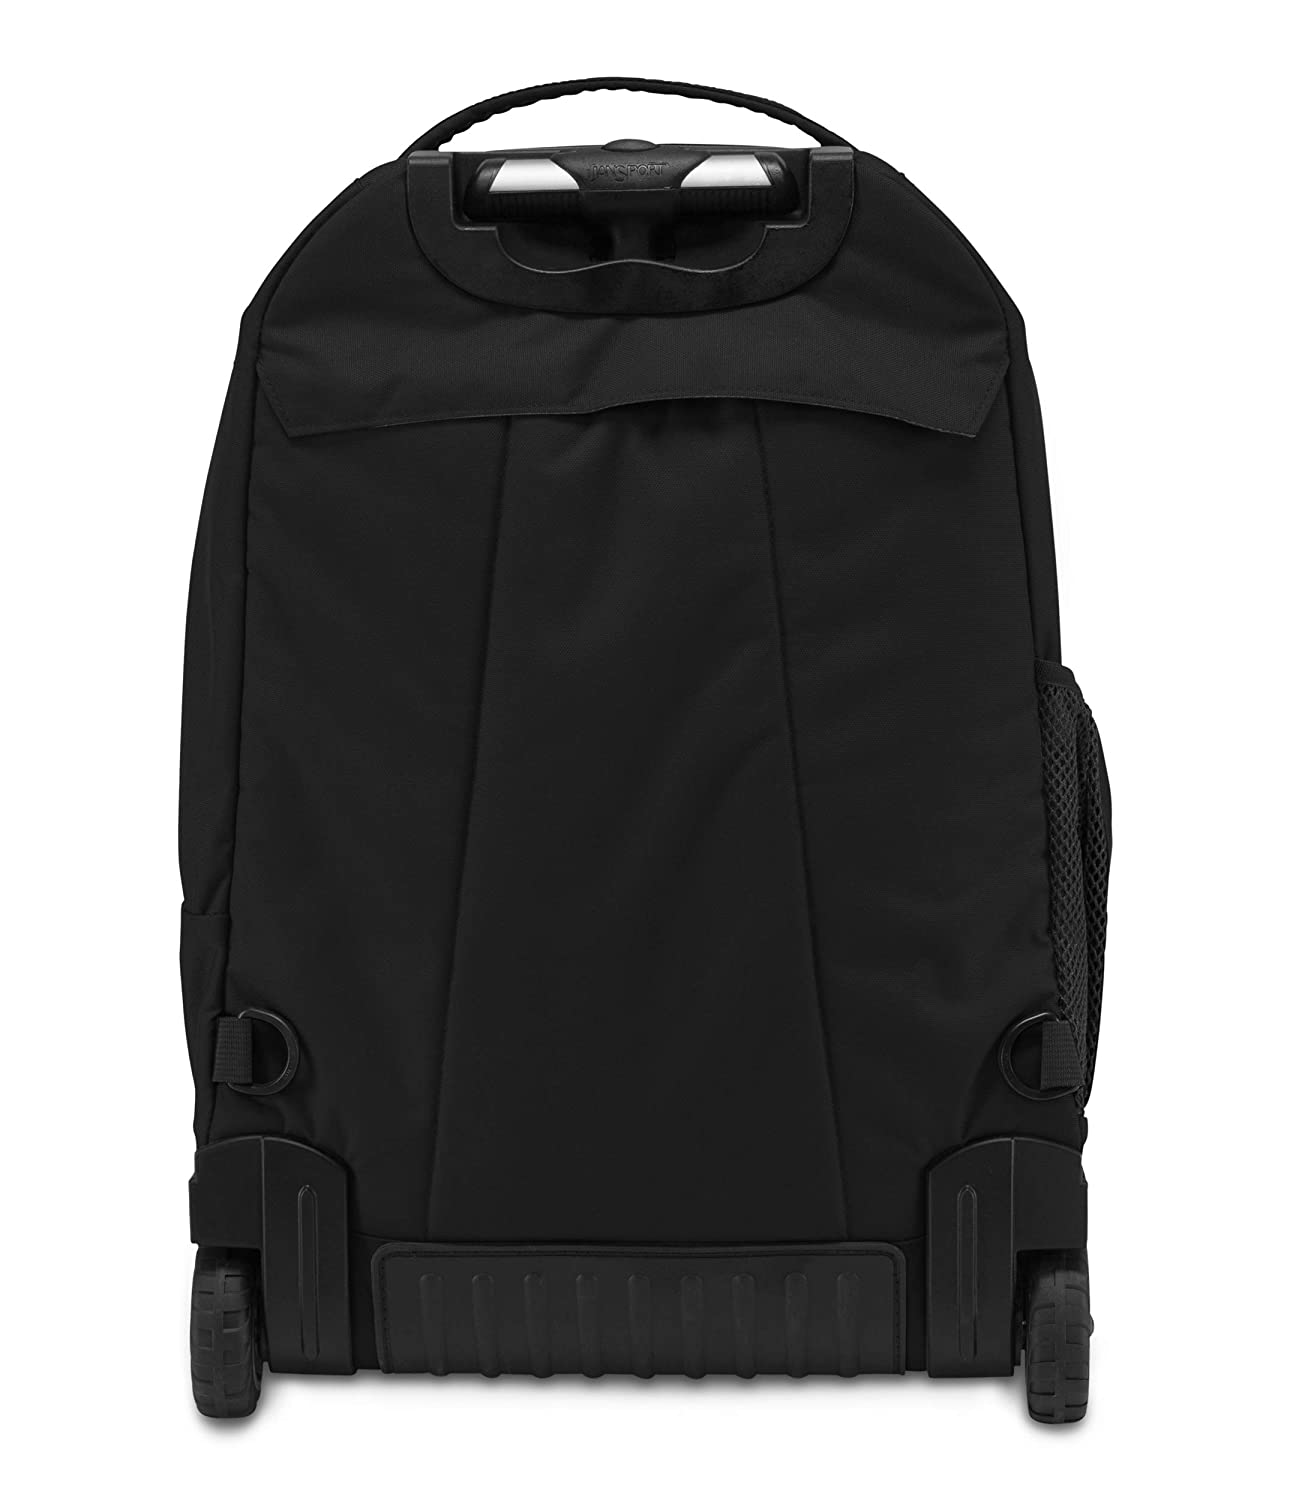 f534fd4a6ebf JanSport Driver 8 Wheeled Trolley Laptop Backpack (Black)  Amazon.in  Bags